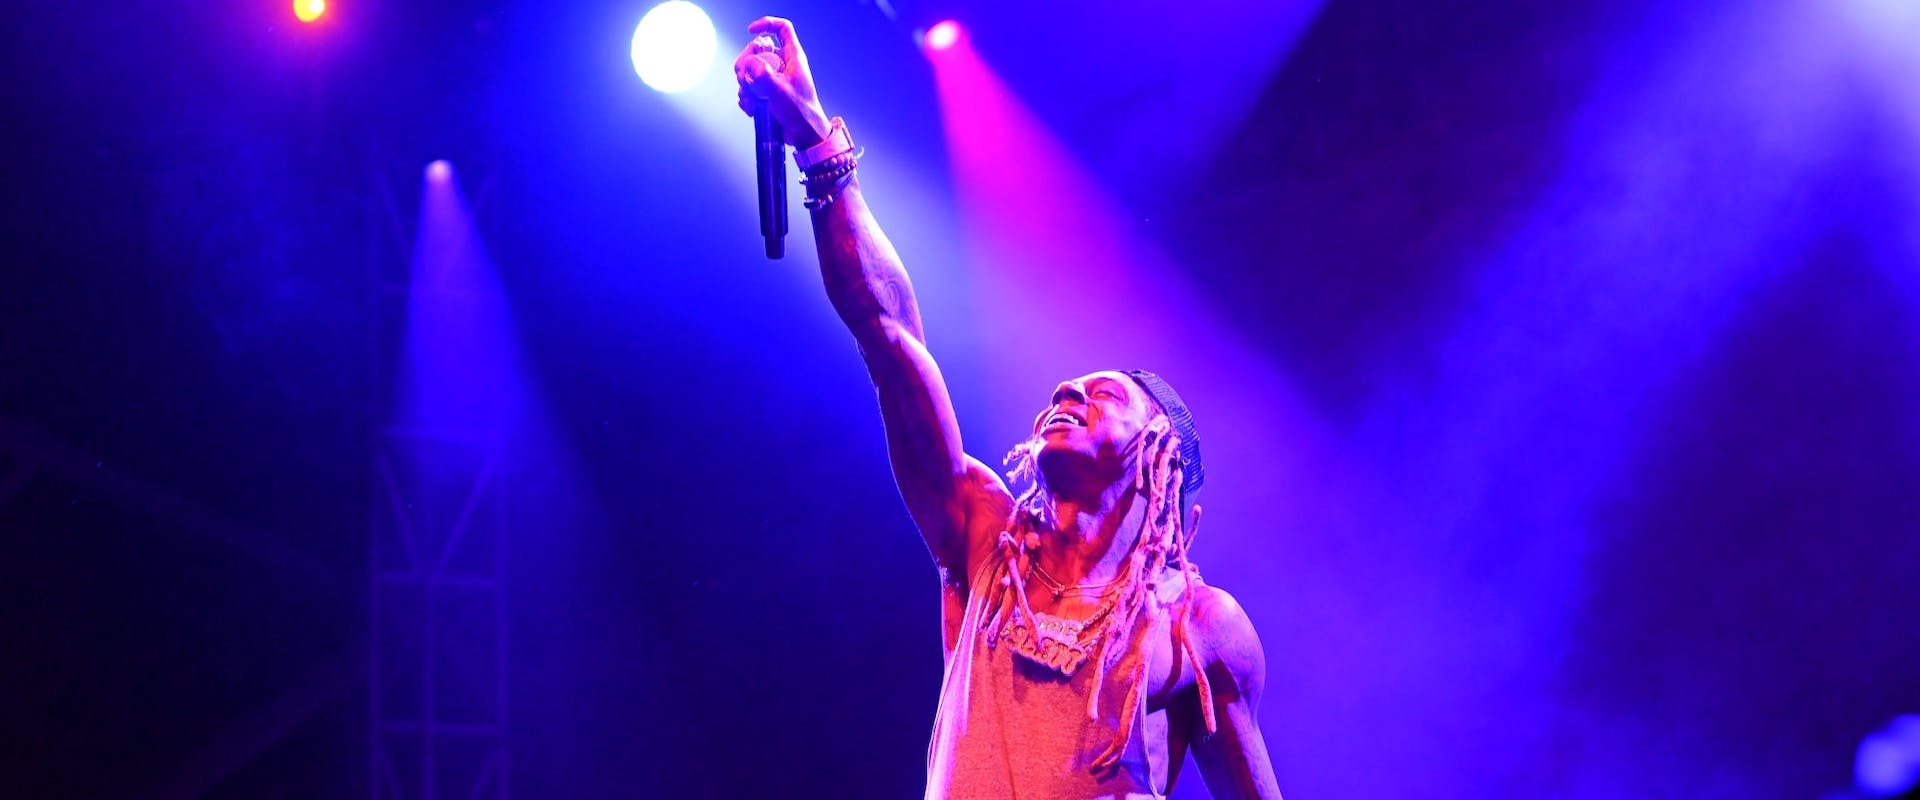 Lil Wayne Performing At One MusicFest